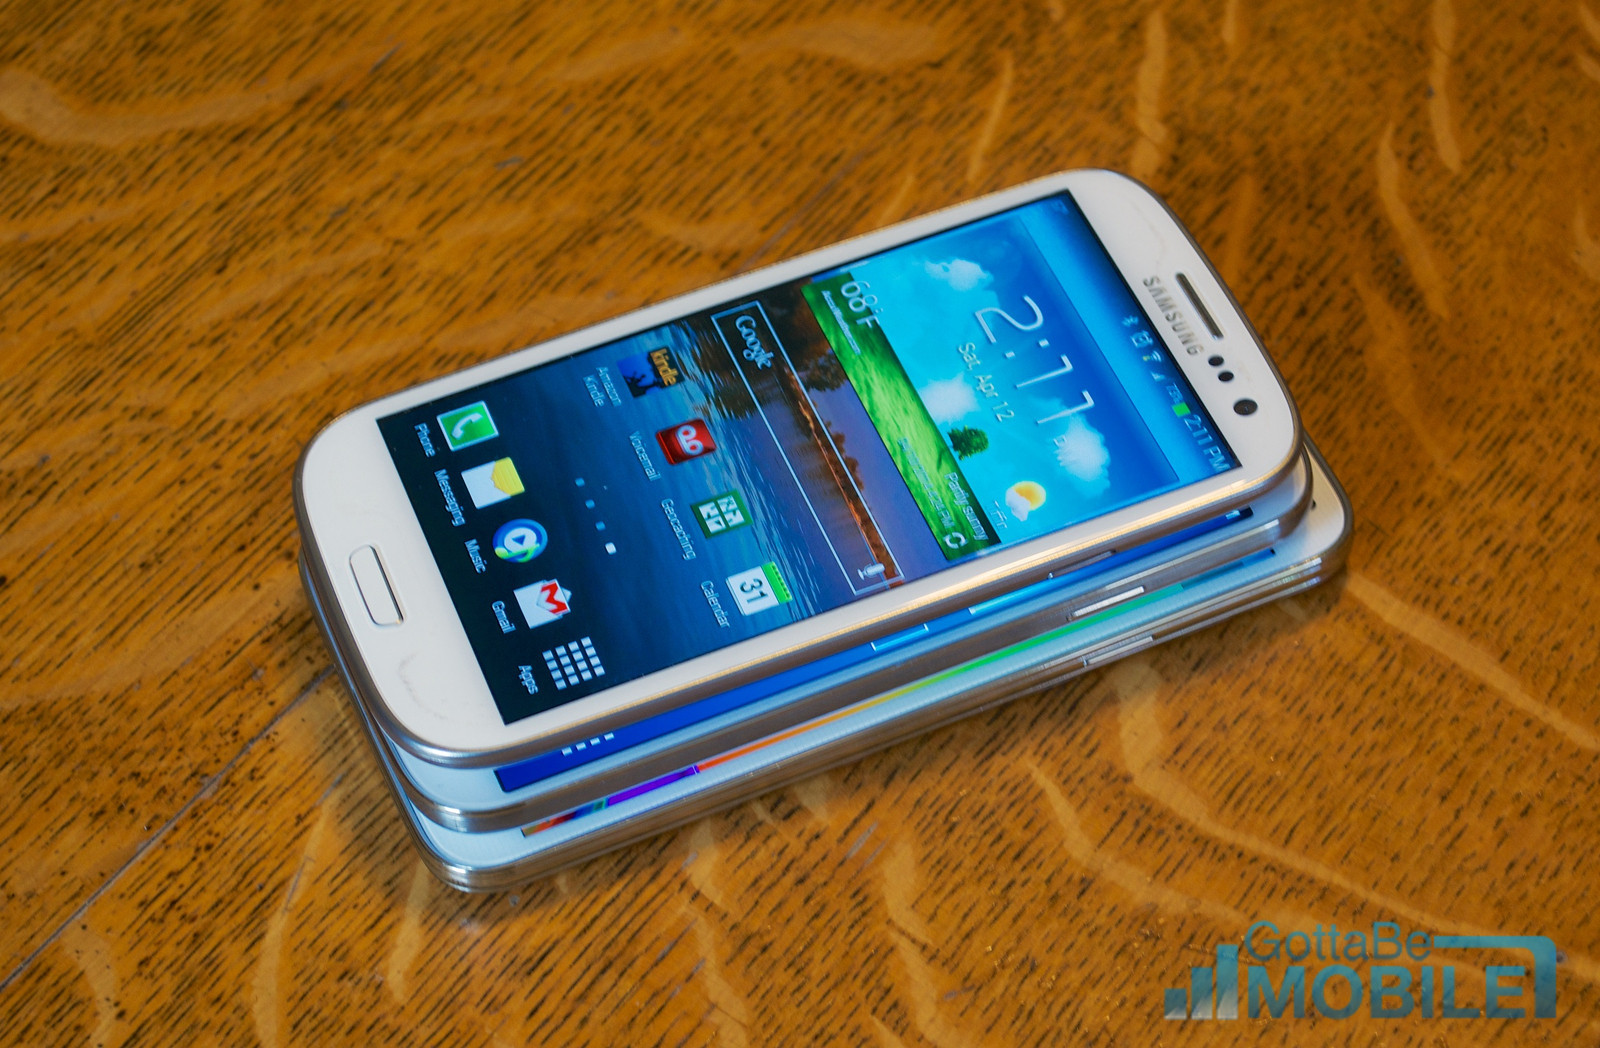 Learn how the Galaxy S3 and the Galaxy S5 compare to see what to expect when you upgrade.